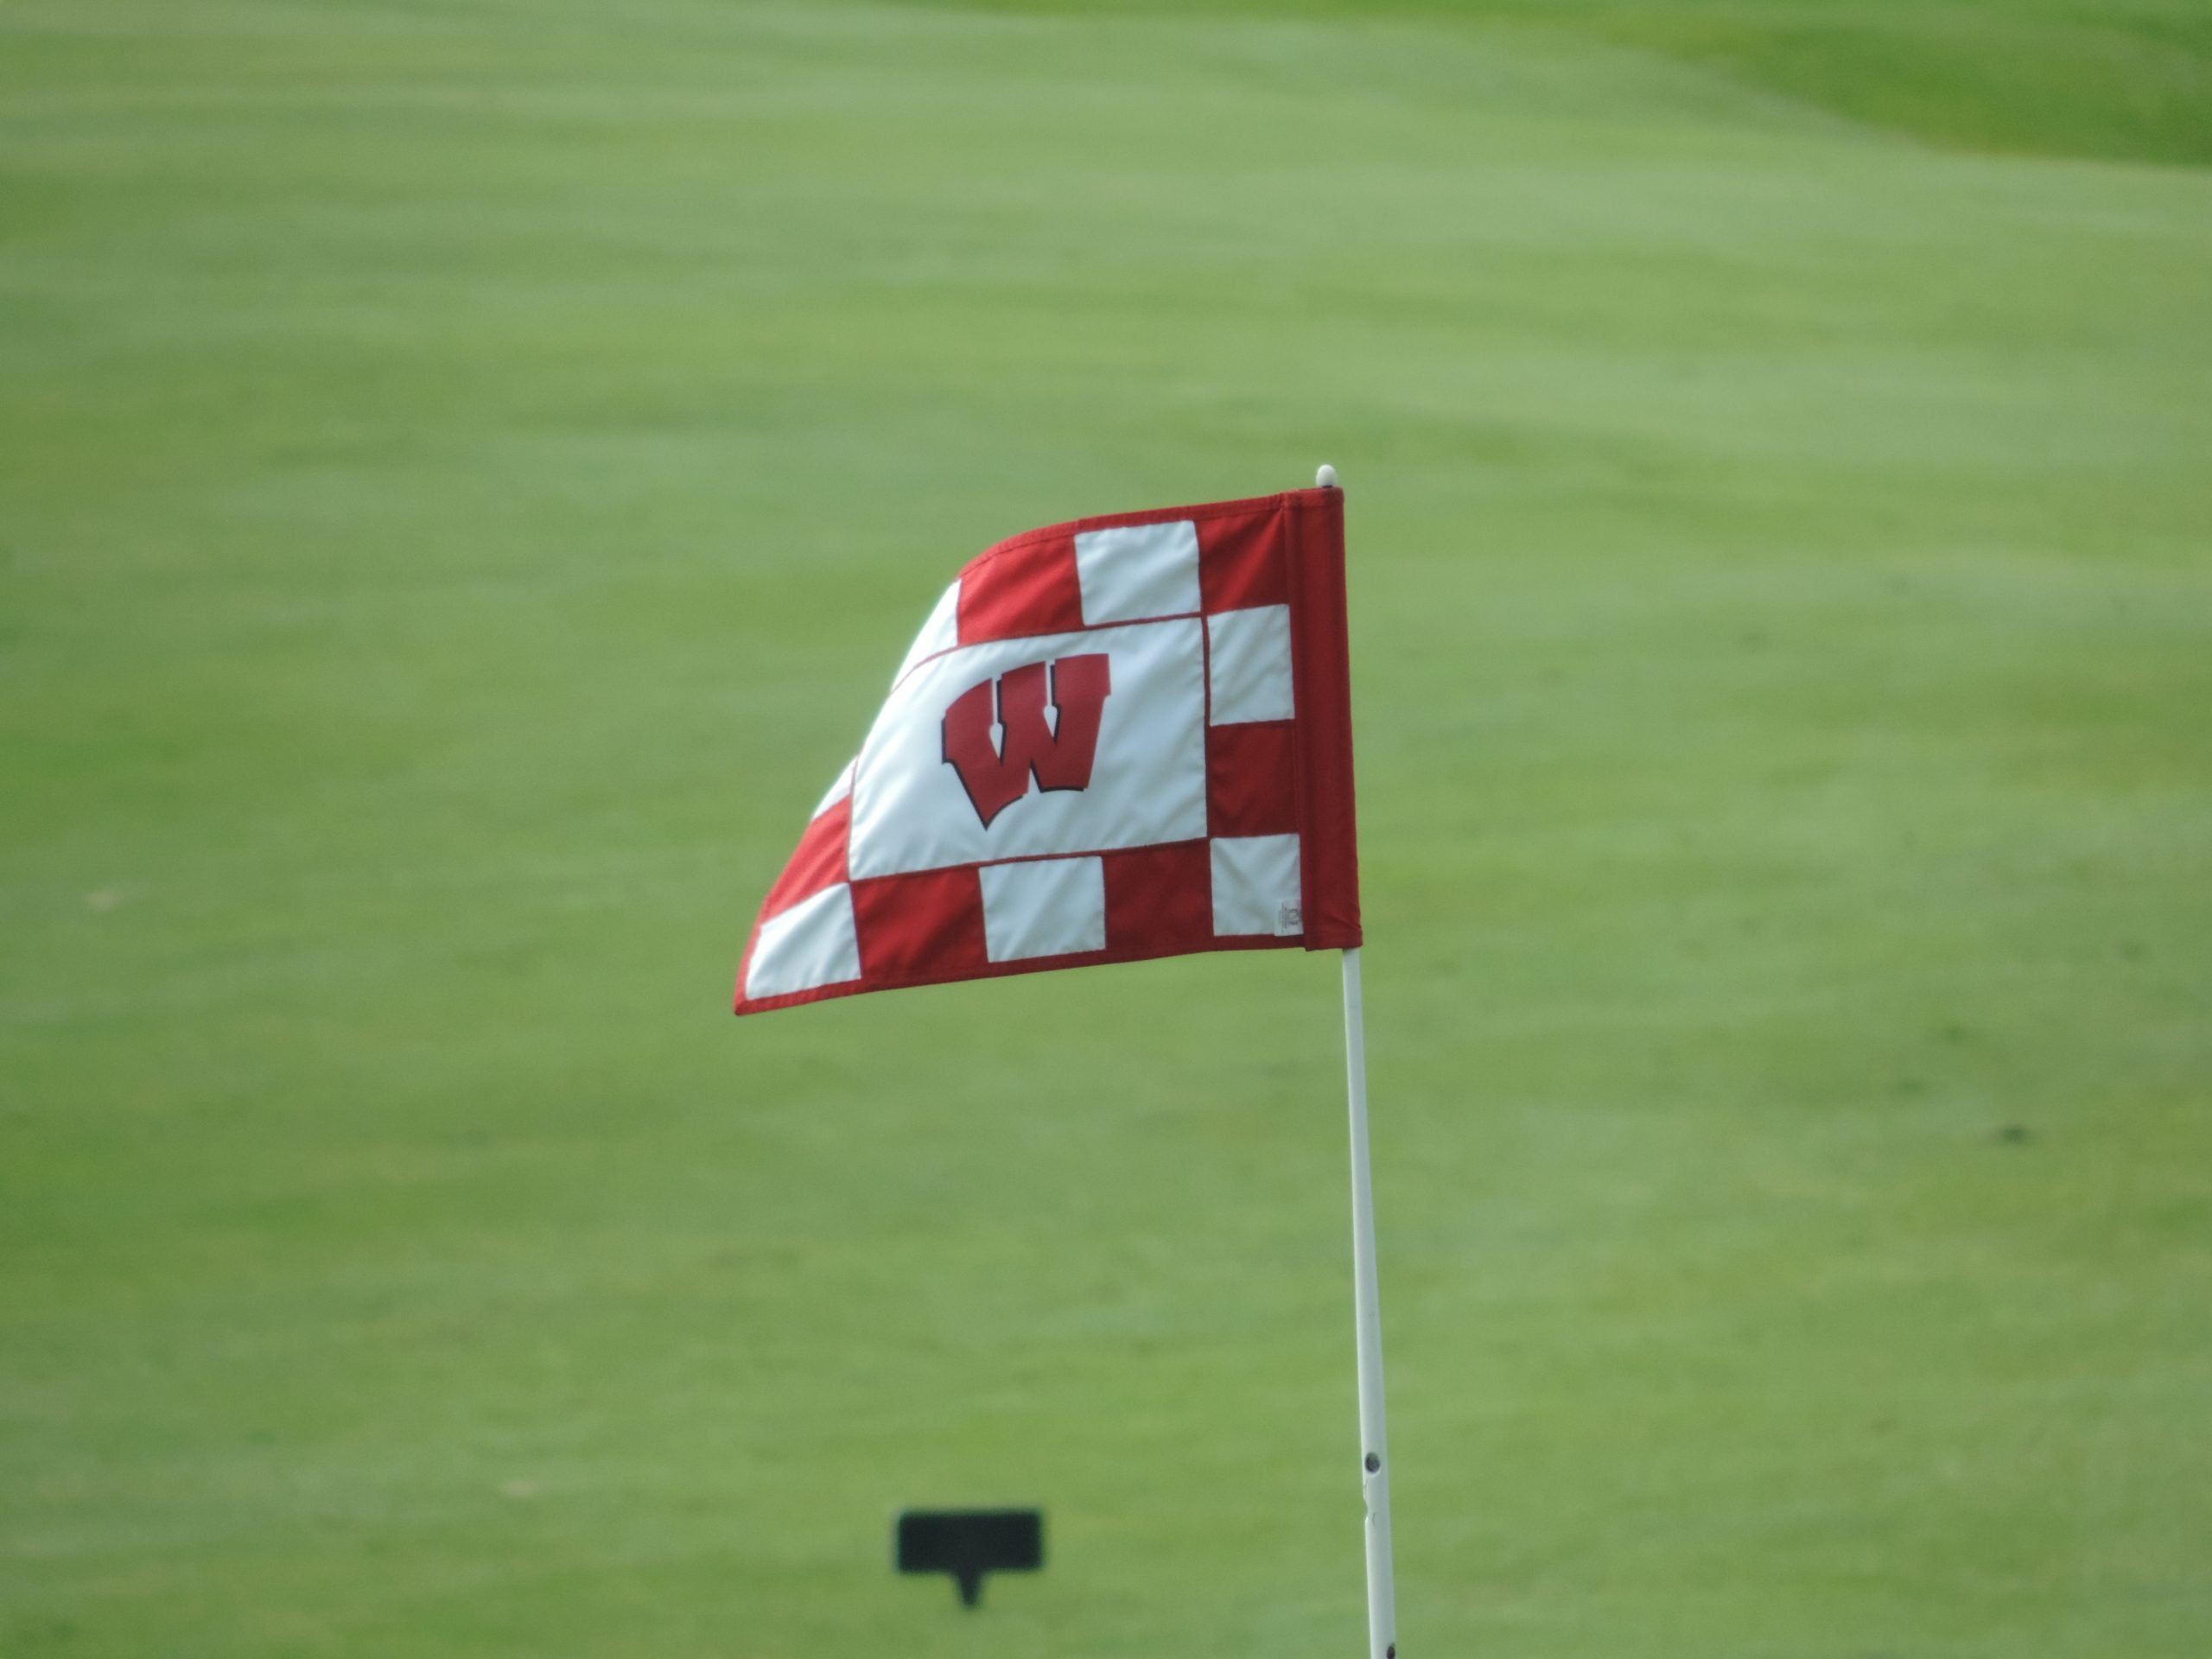 Wisconsin's Curtis tied for the lead at NCAA women's golf regional